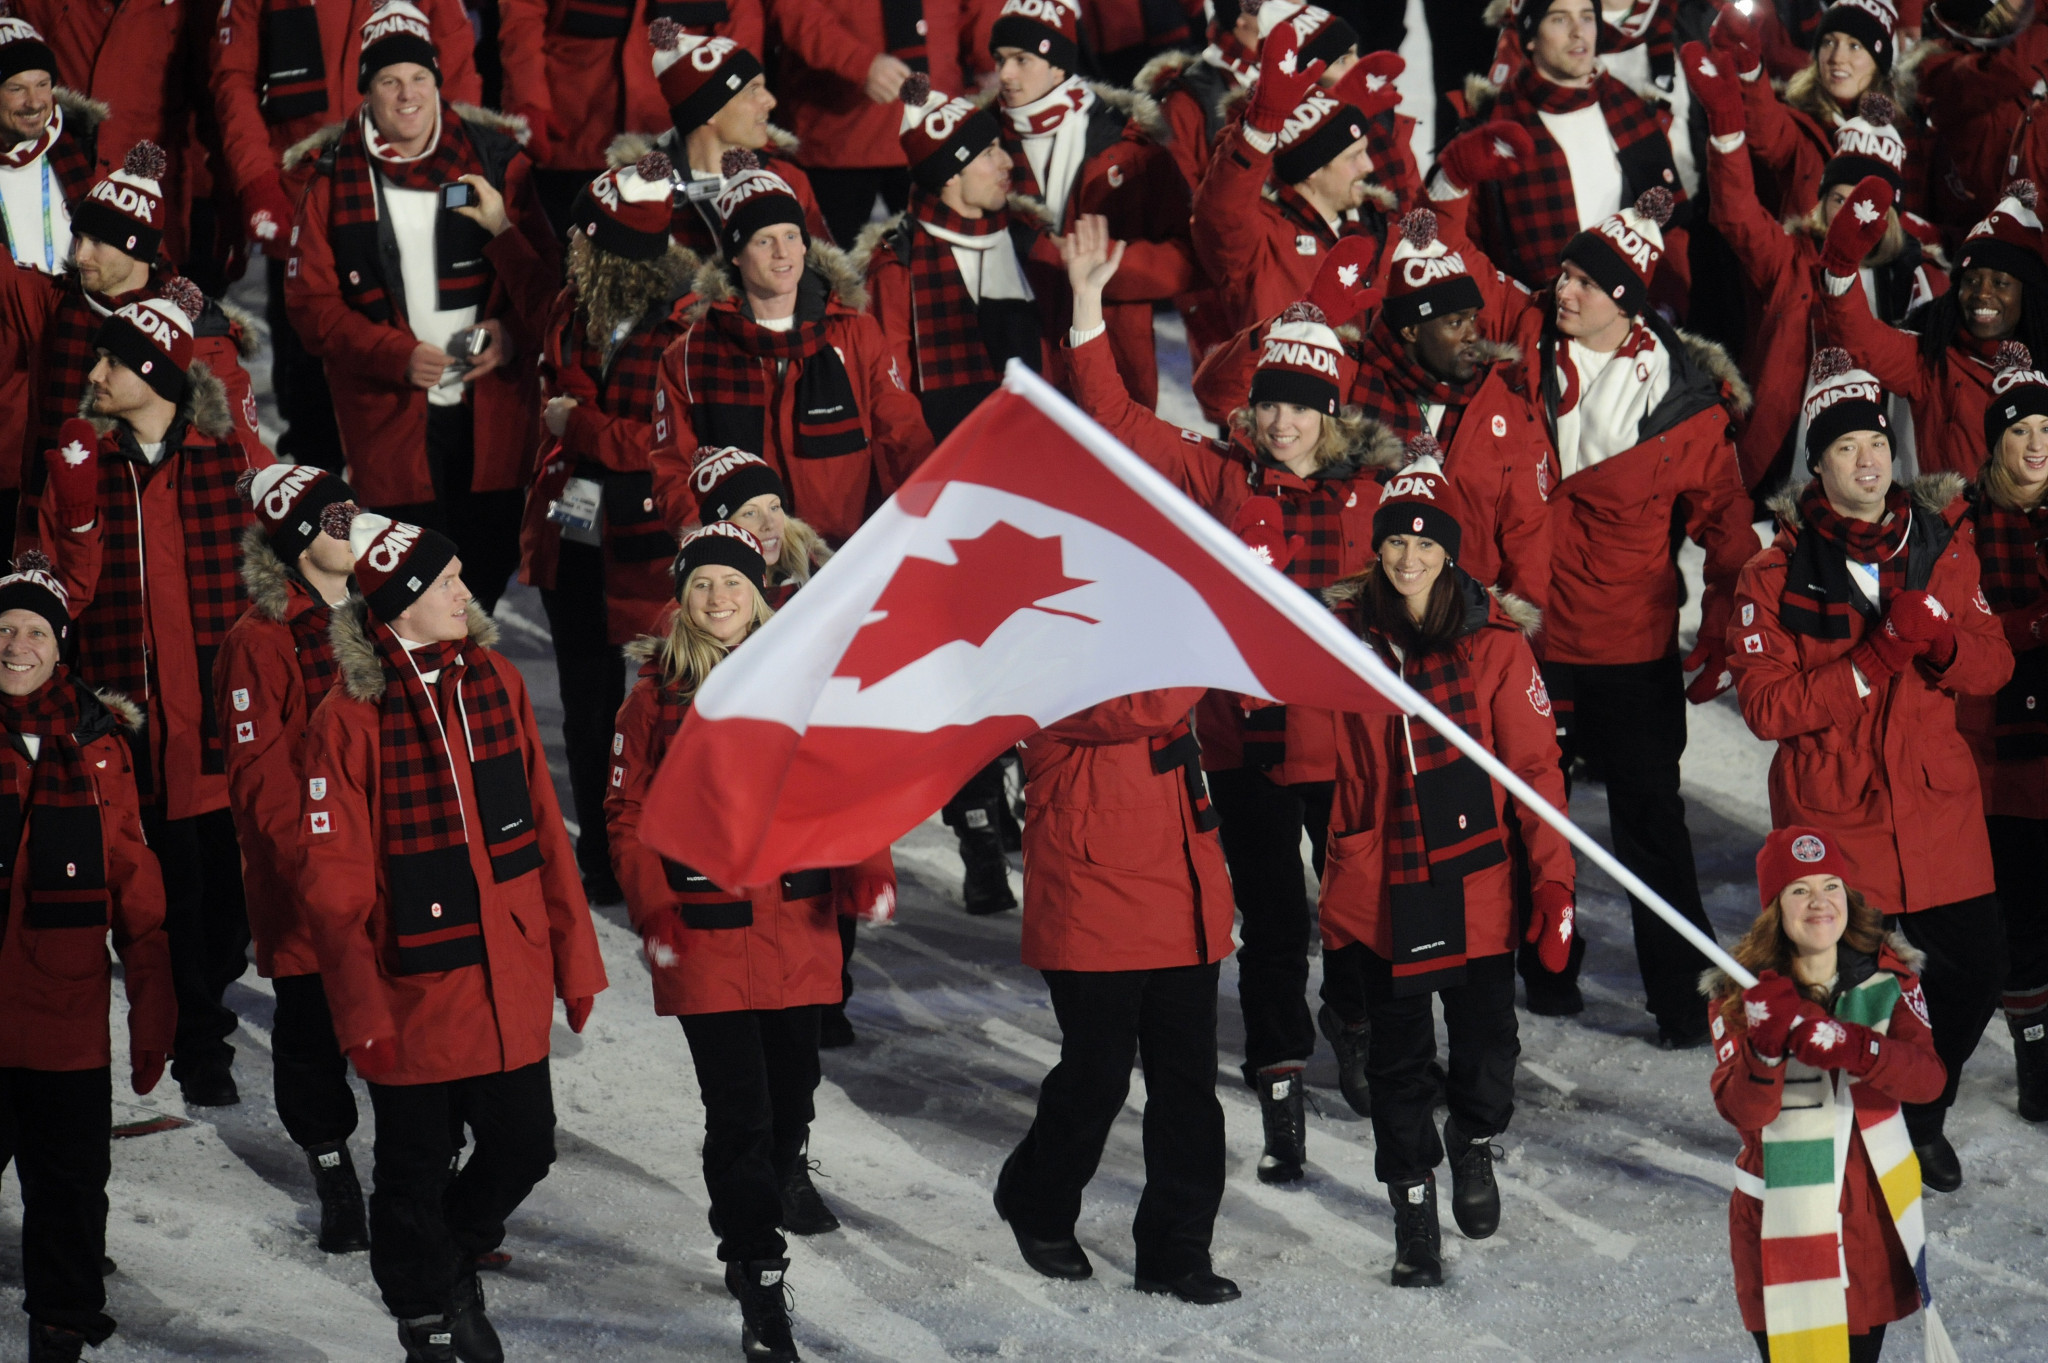 Canada's athletes at the Opening Ceremony of the 2010 Winter Olympic Games in Vancouver, clad in their regulation red parkas - with faux fur trim ©Getty Images